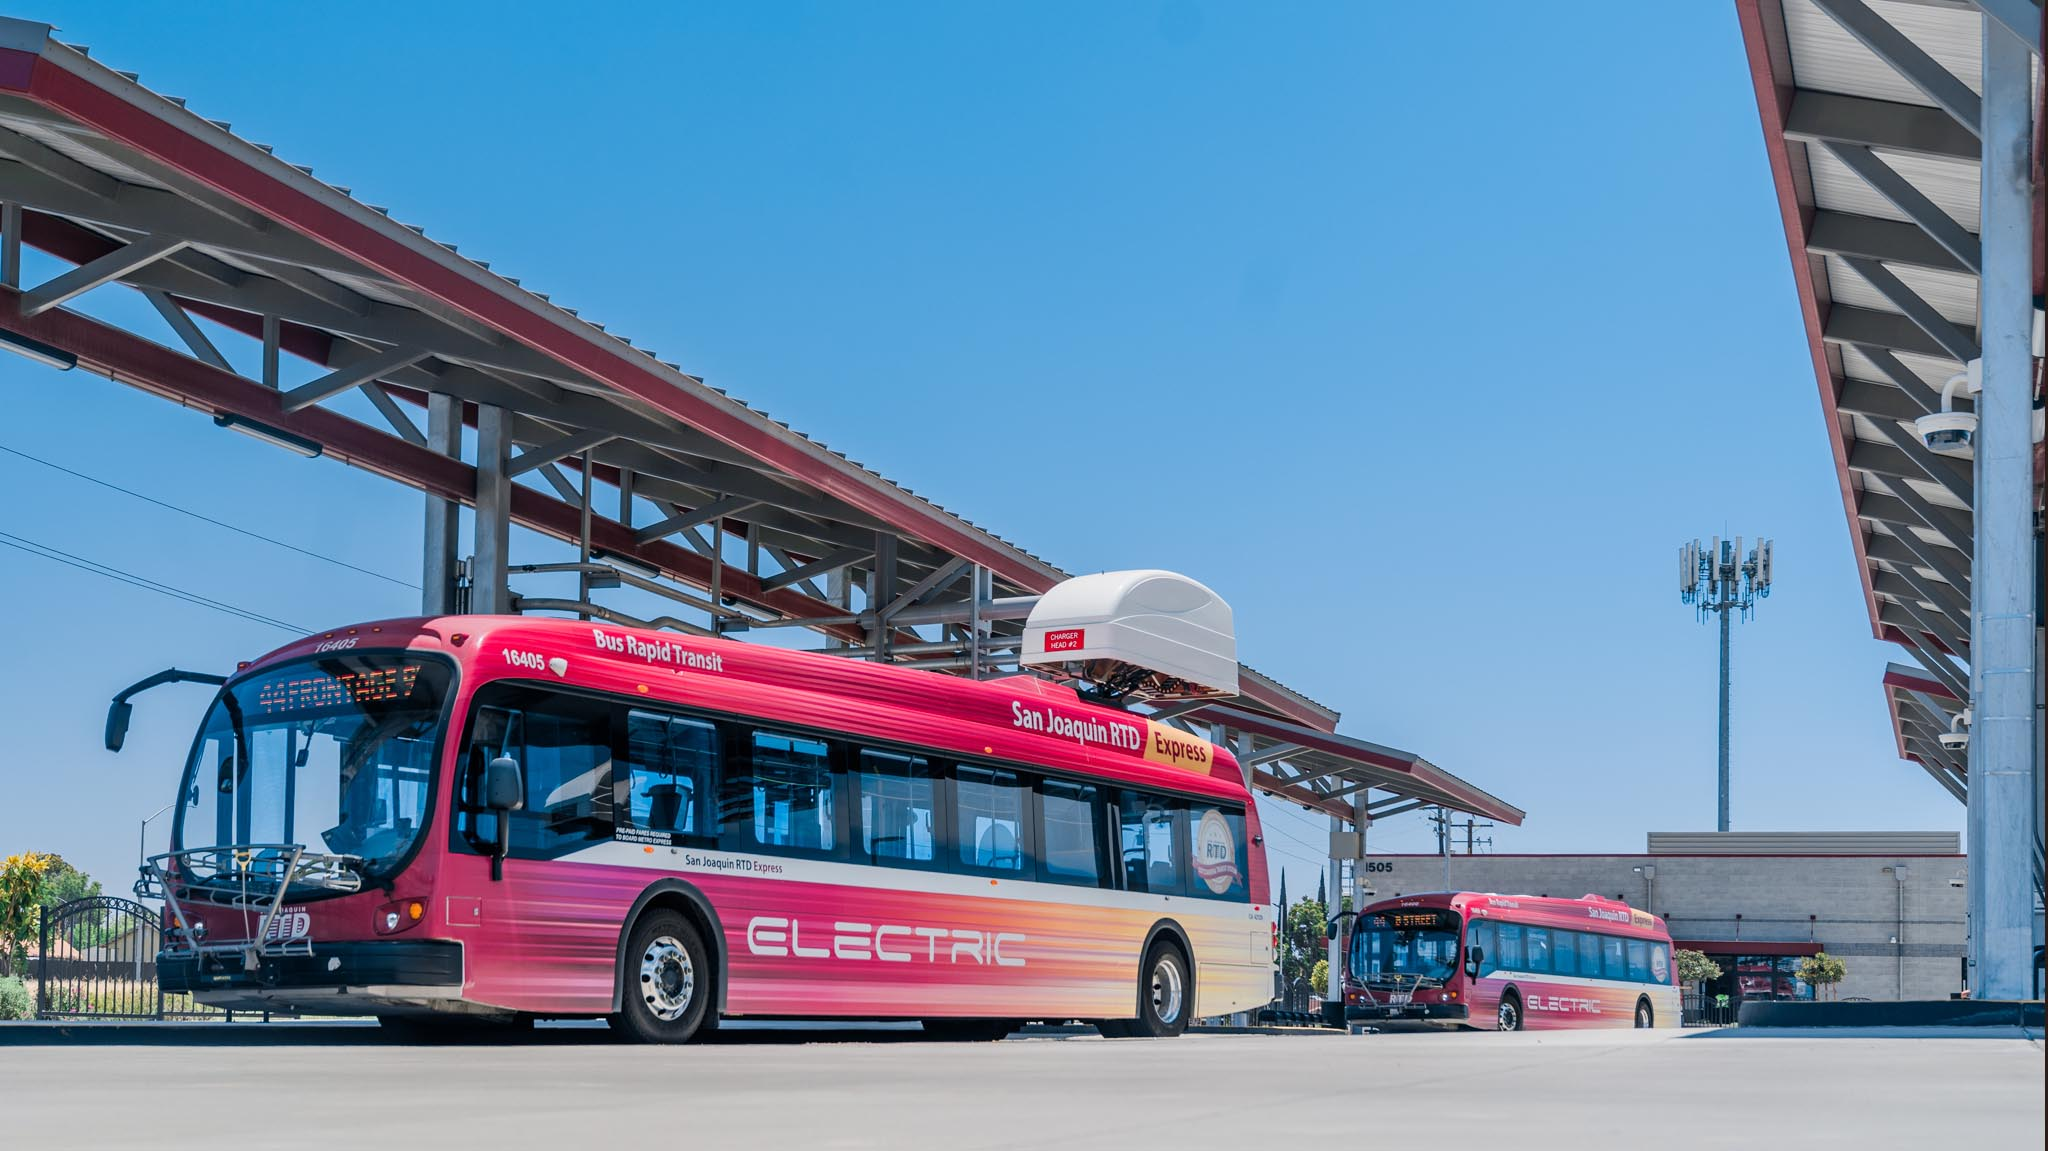 Image of electric express buses at the union transfer station.